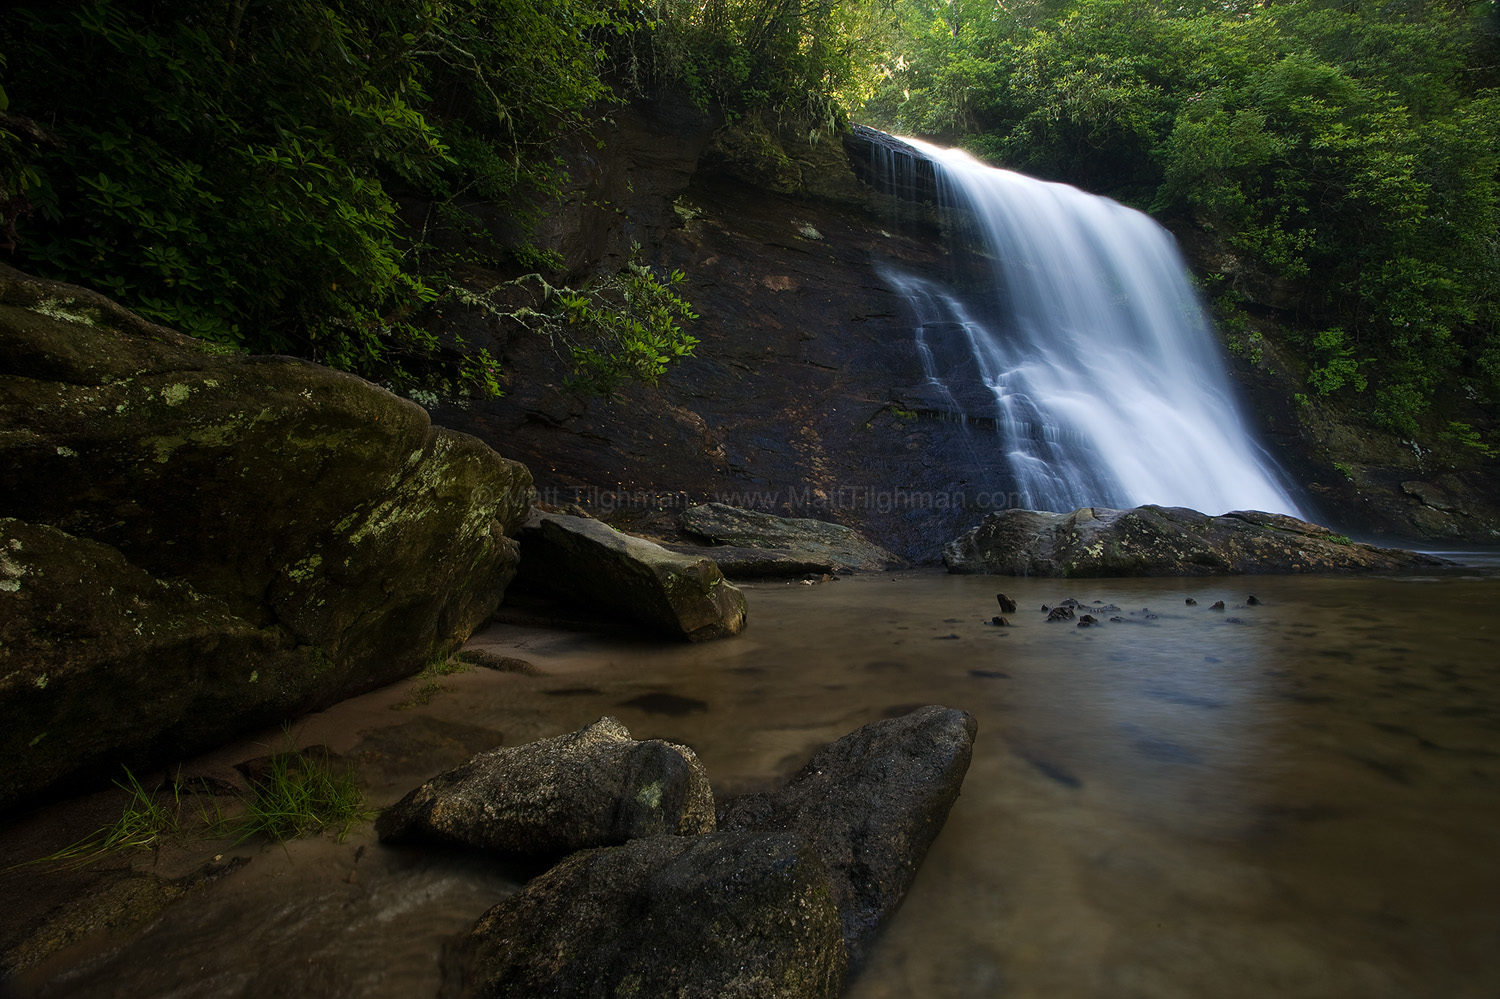 Fine art stock photograph of dawn at Silver Run Falls, a beautiful waterfall located in the Nantahala National Forest near Cashiers, North Carolina.